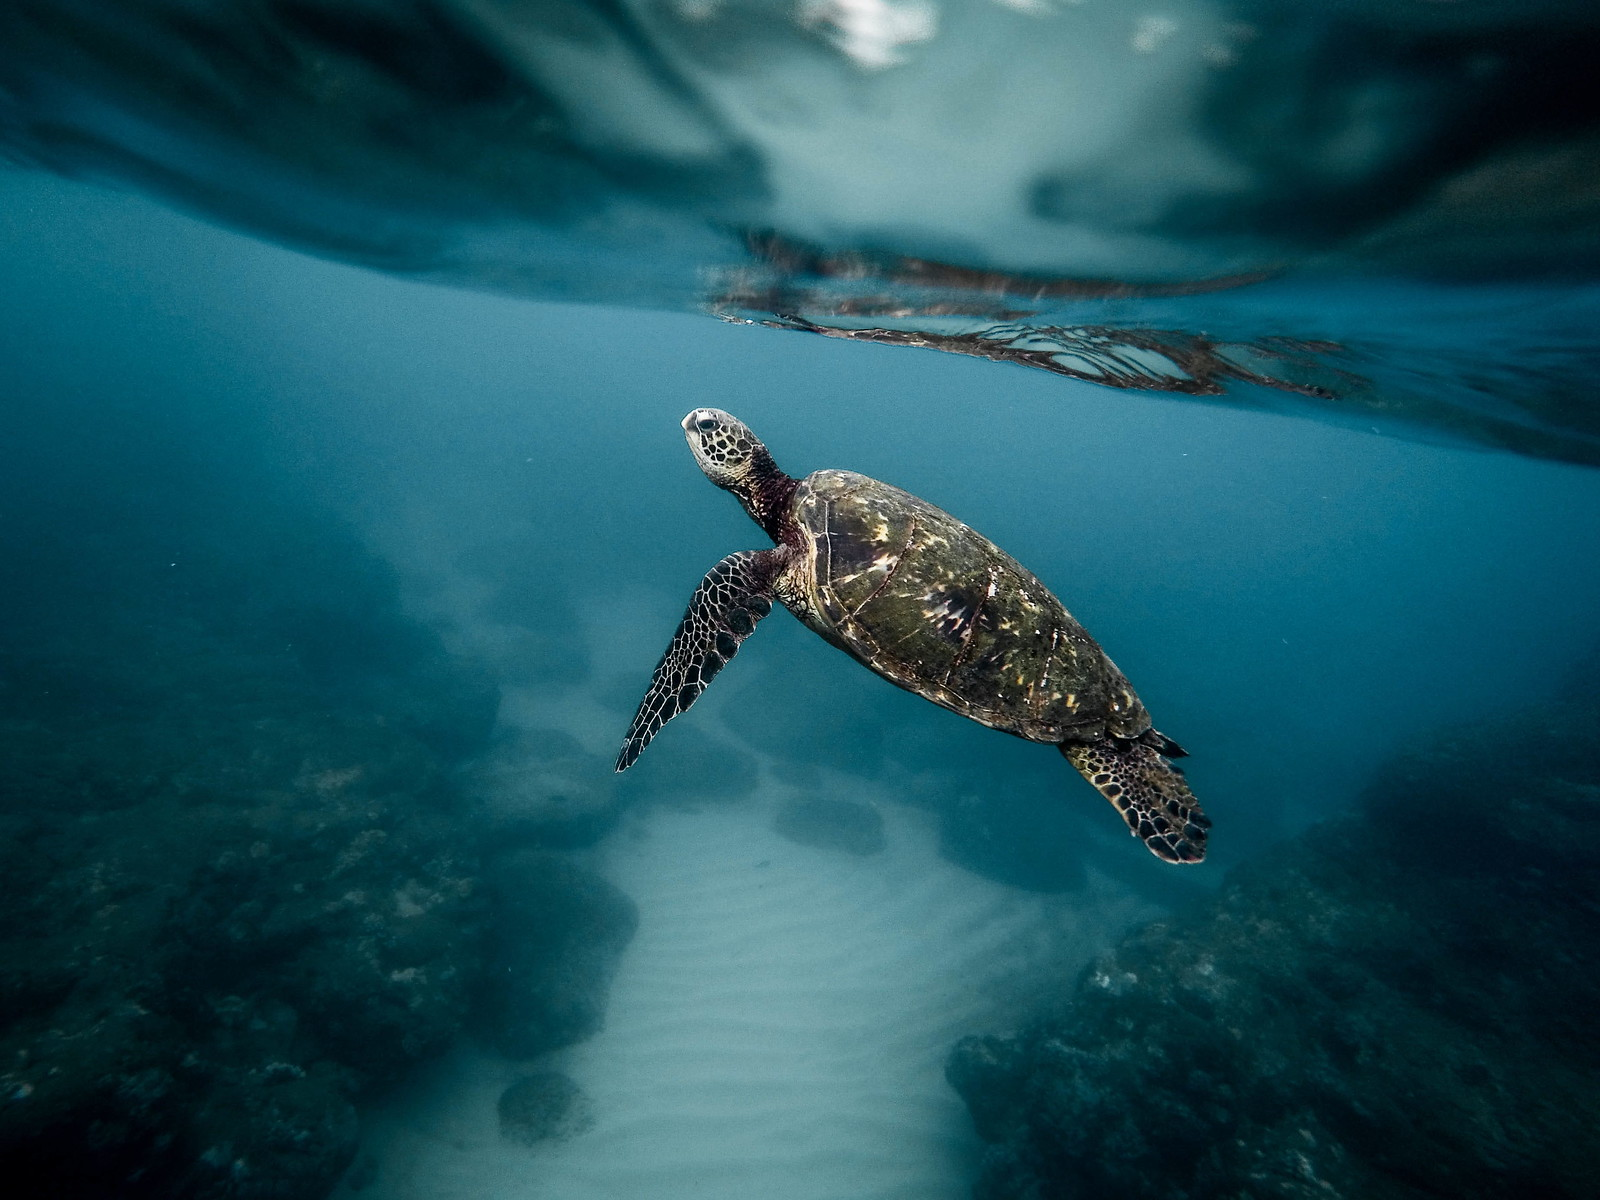 Ingested Plastic Causes Buoyancy Issues in Some Sea Turtles